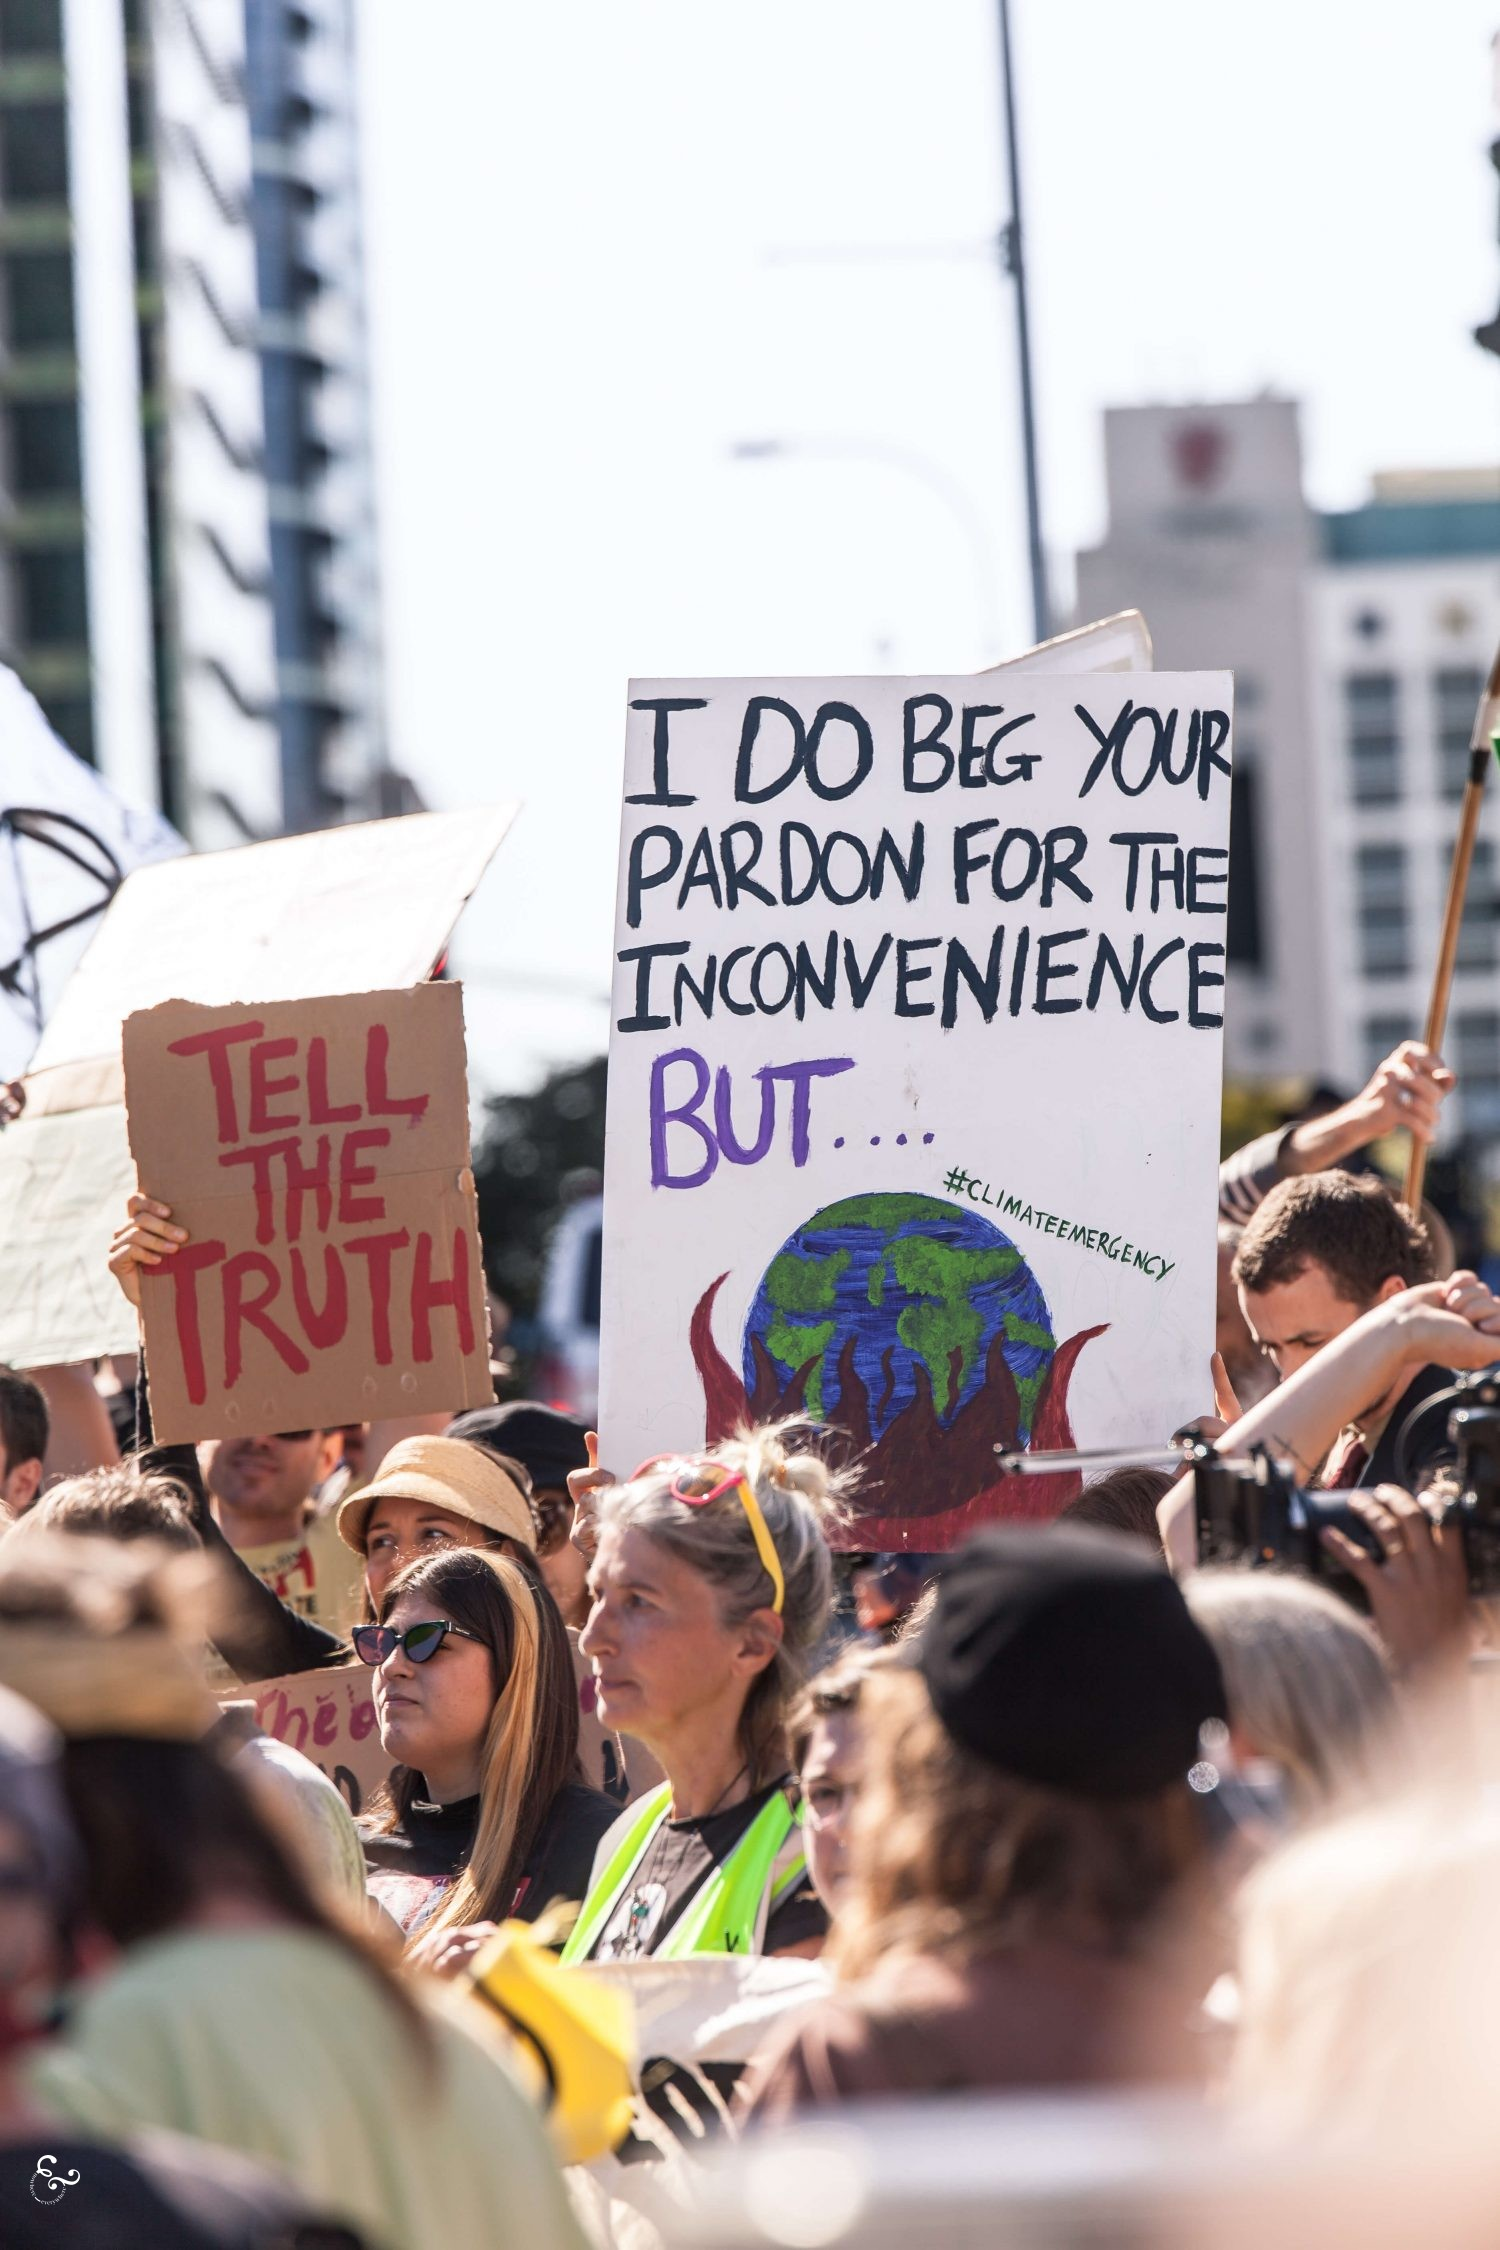 Extinction Rebellion Protest Brisbane Australia UK Photos - Nowhere & Everywhere - Climate Change Crisis Biodiversity